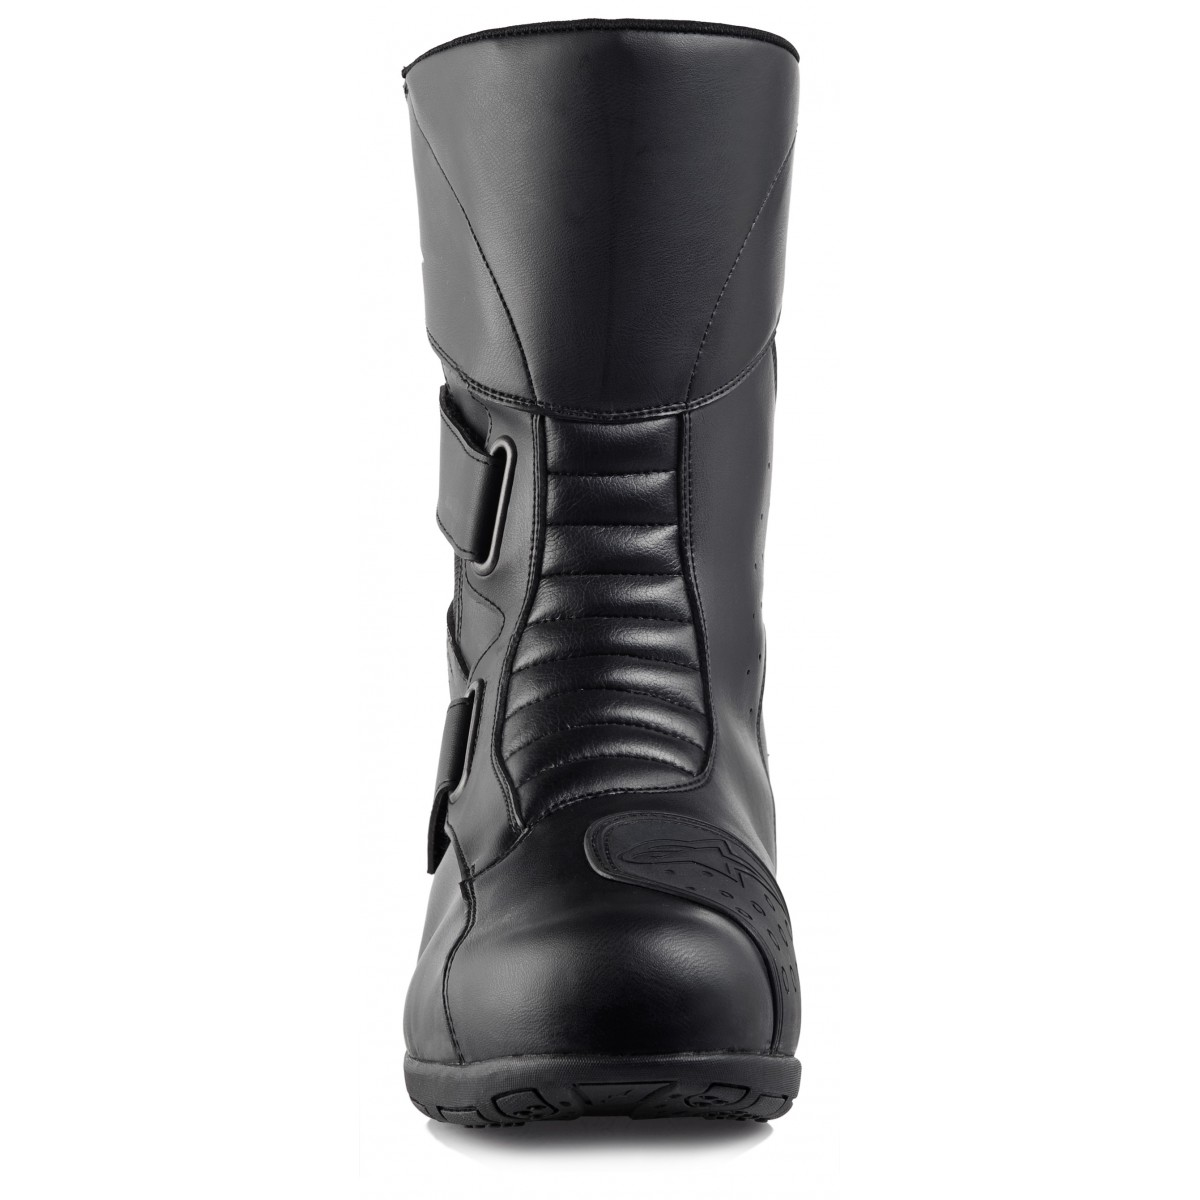 Bota Alpinestars Roam Waterproof (Impermeável)  - Super Bike - Loja Oficial Alpinestars